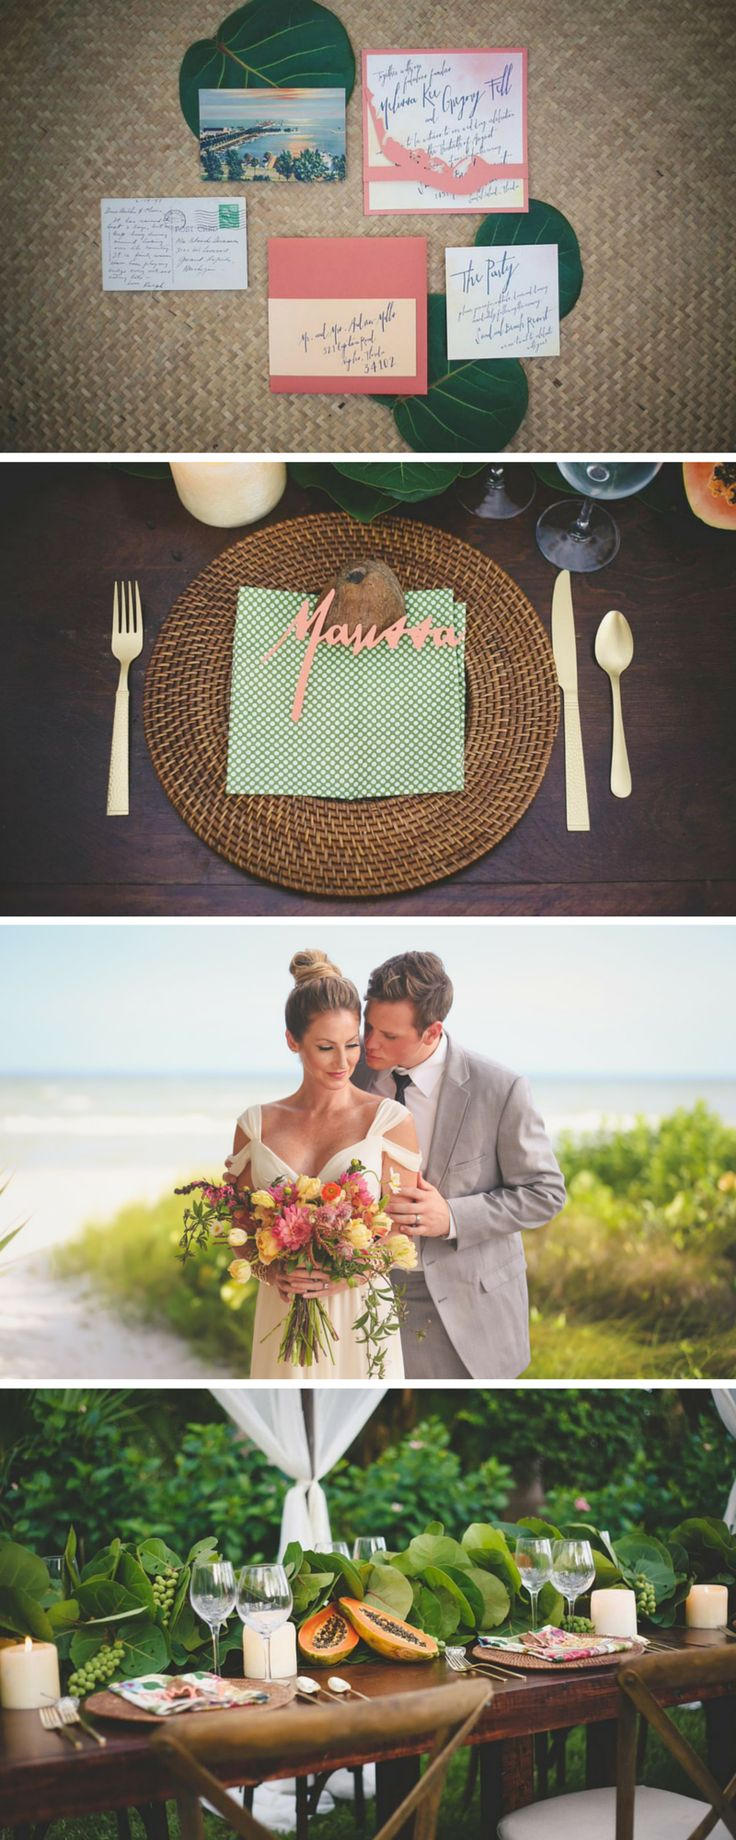 Coastal Wedding Invitation with a Tahitian-style theme - Sundial Beach Resort & Spa - Beach Wedding Invites | Sanibel Island Wedding